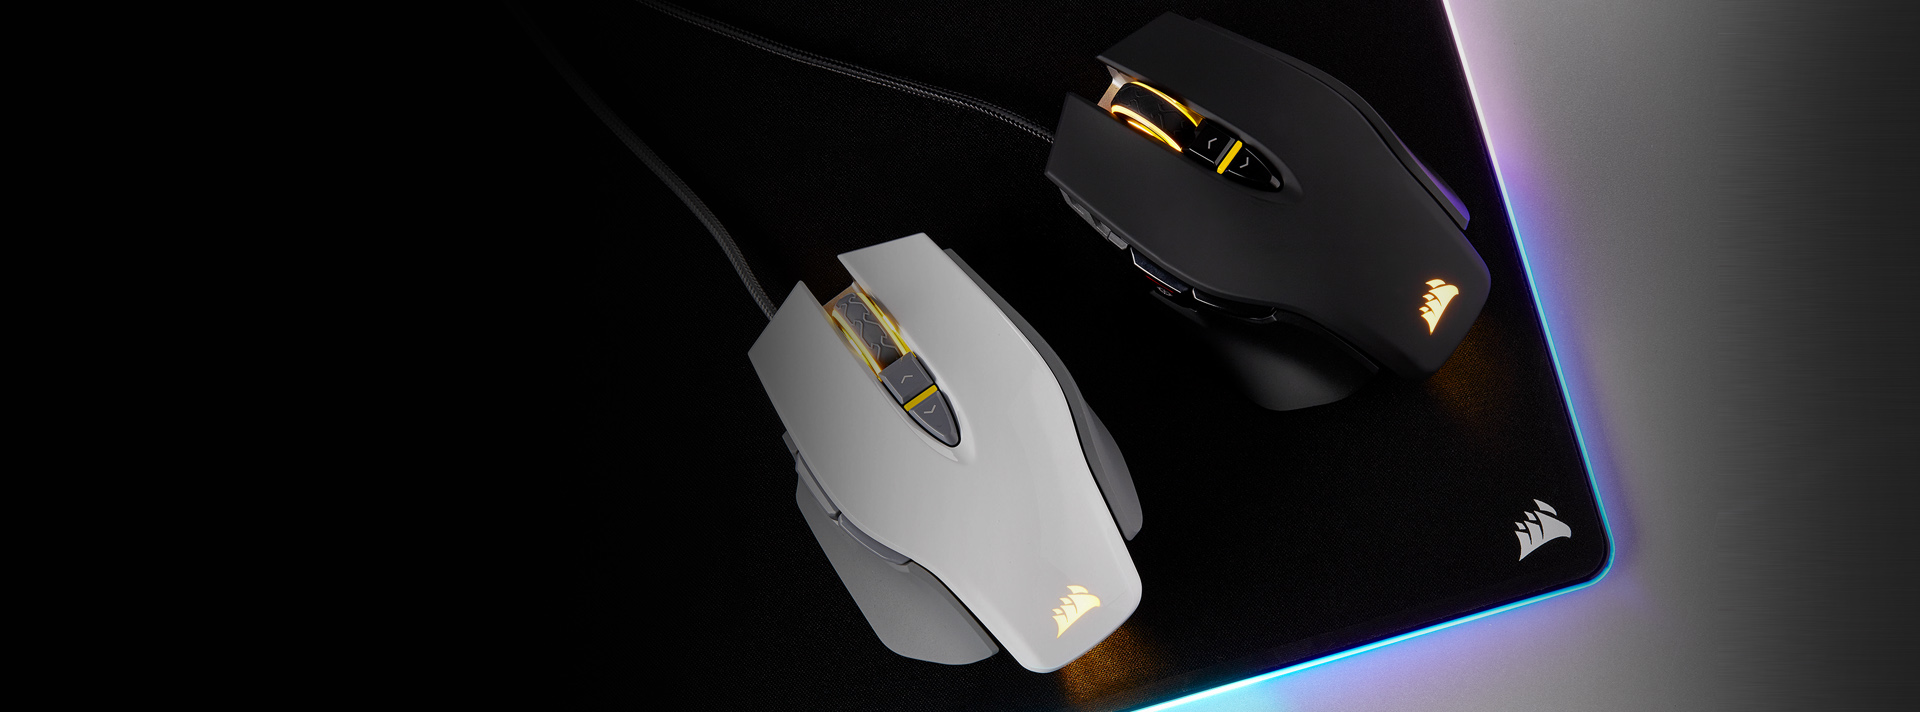 Corsair | Gaming mice | Mouse pads | Components